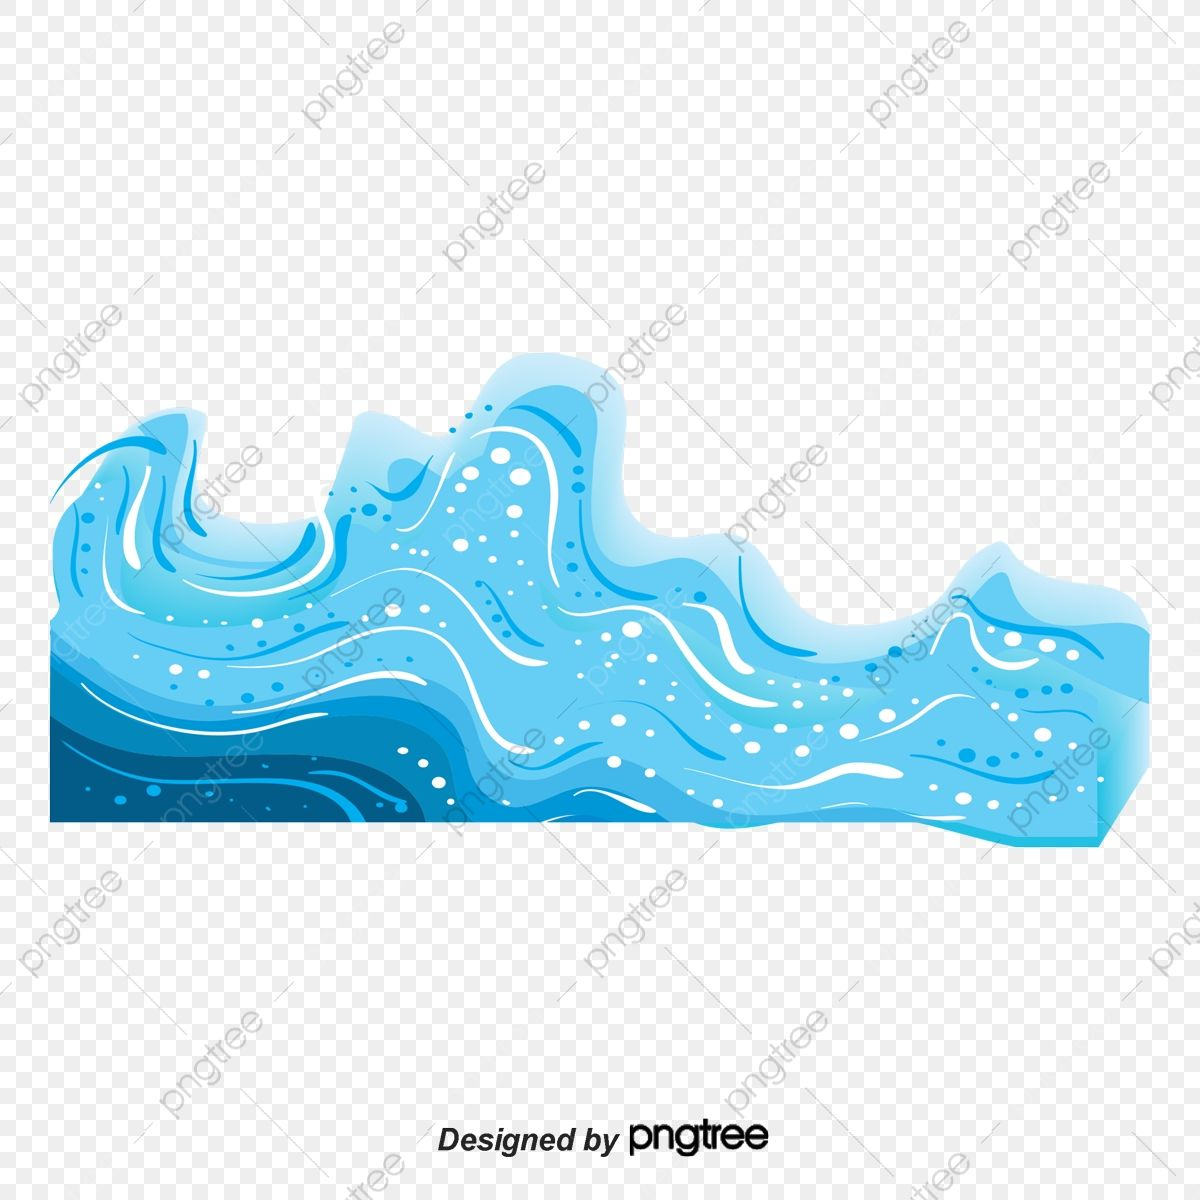 Download This Vector Cartoon Waves Wave Blue Cartoon Transparent Png Or Vector File For Free Pngtree Has Millions Of Free Png Wave Clipart Cartoon Clip Art